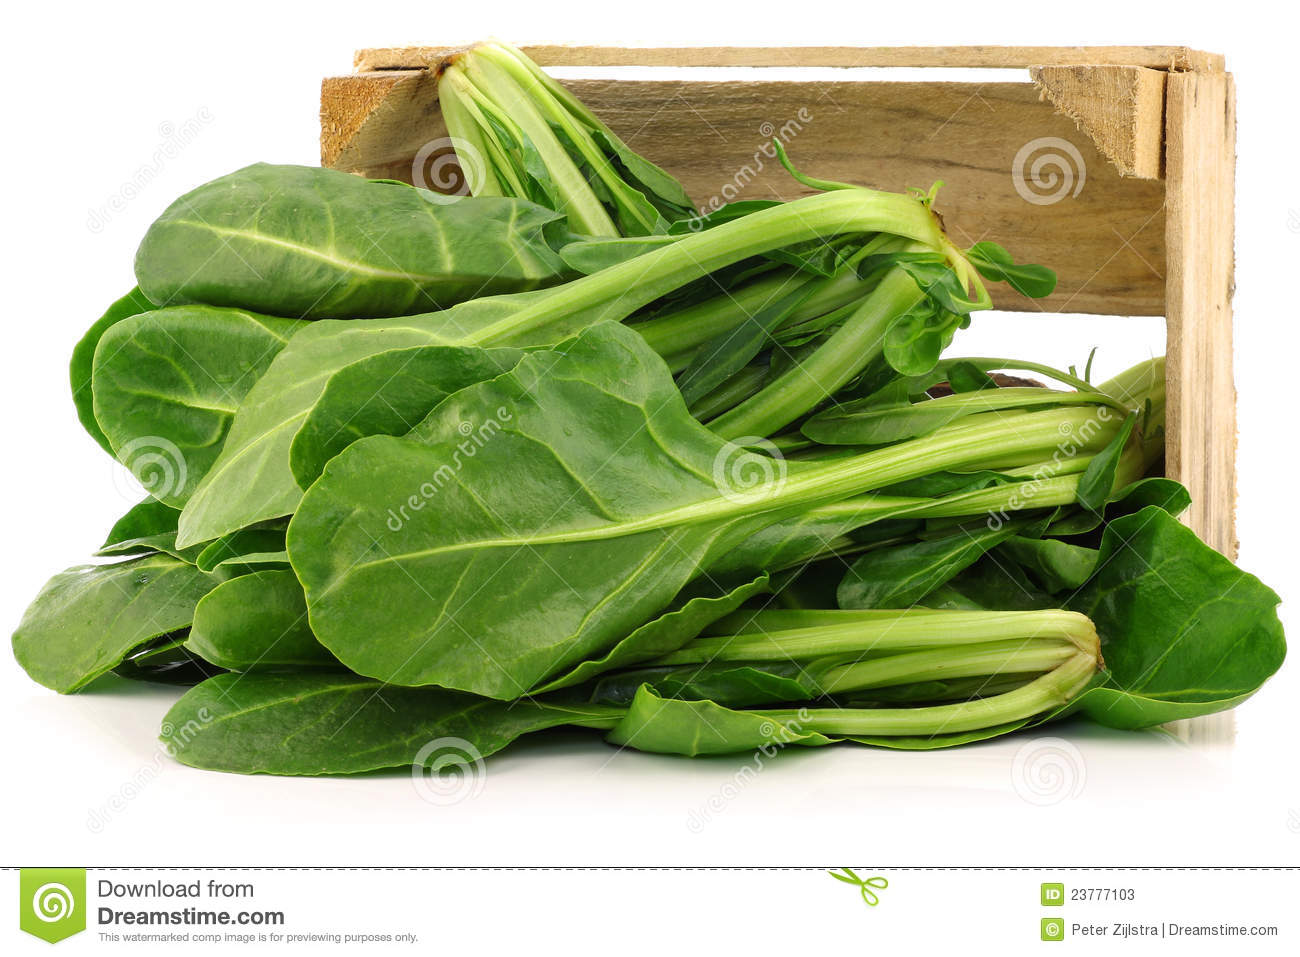 ... spinach (Ipomoea aquatica) in a wooden crate on a white background